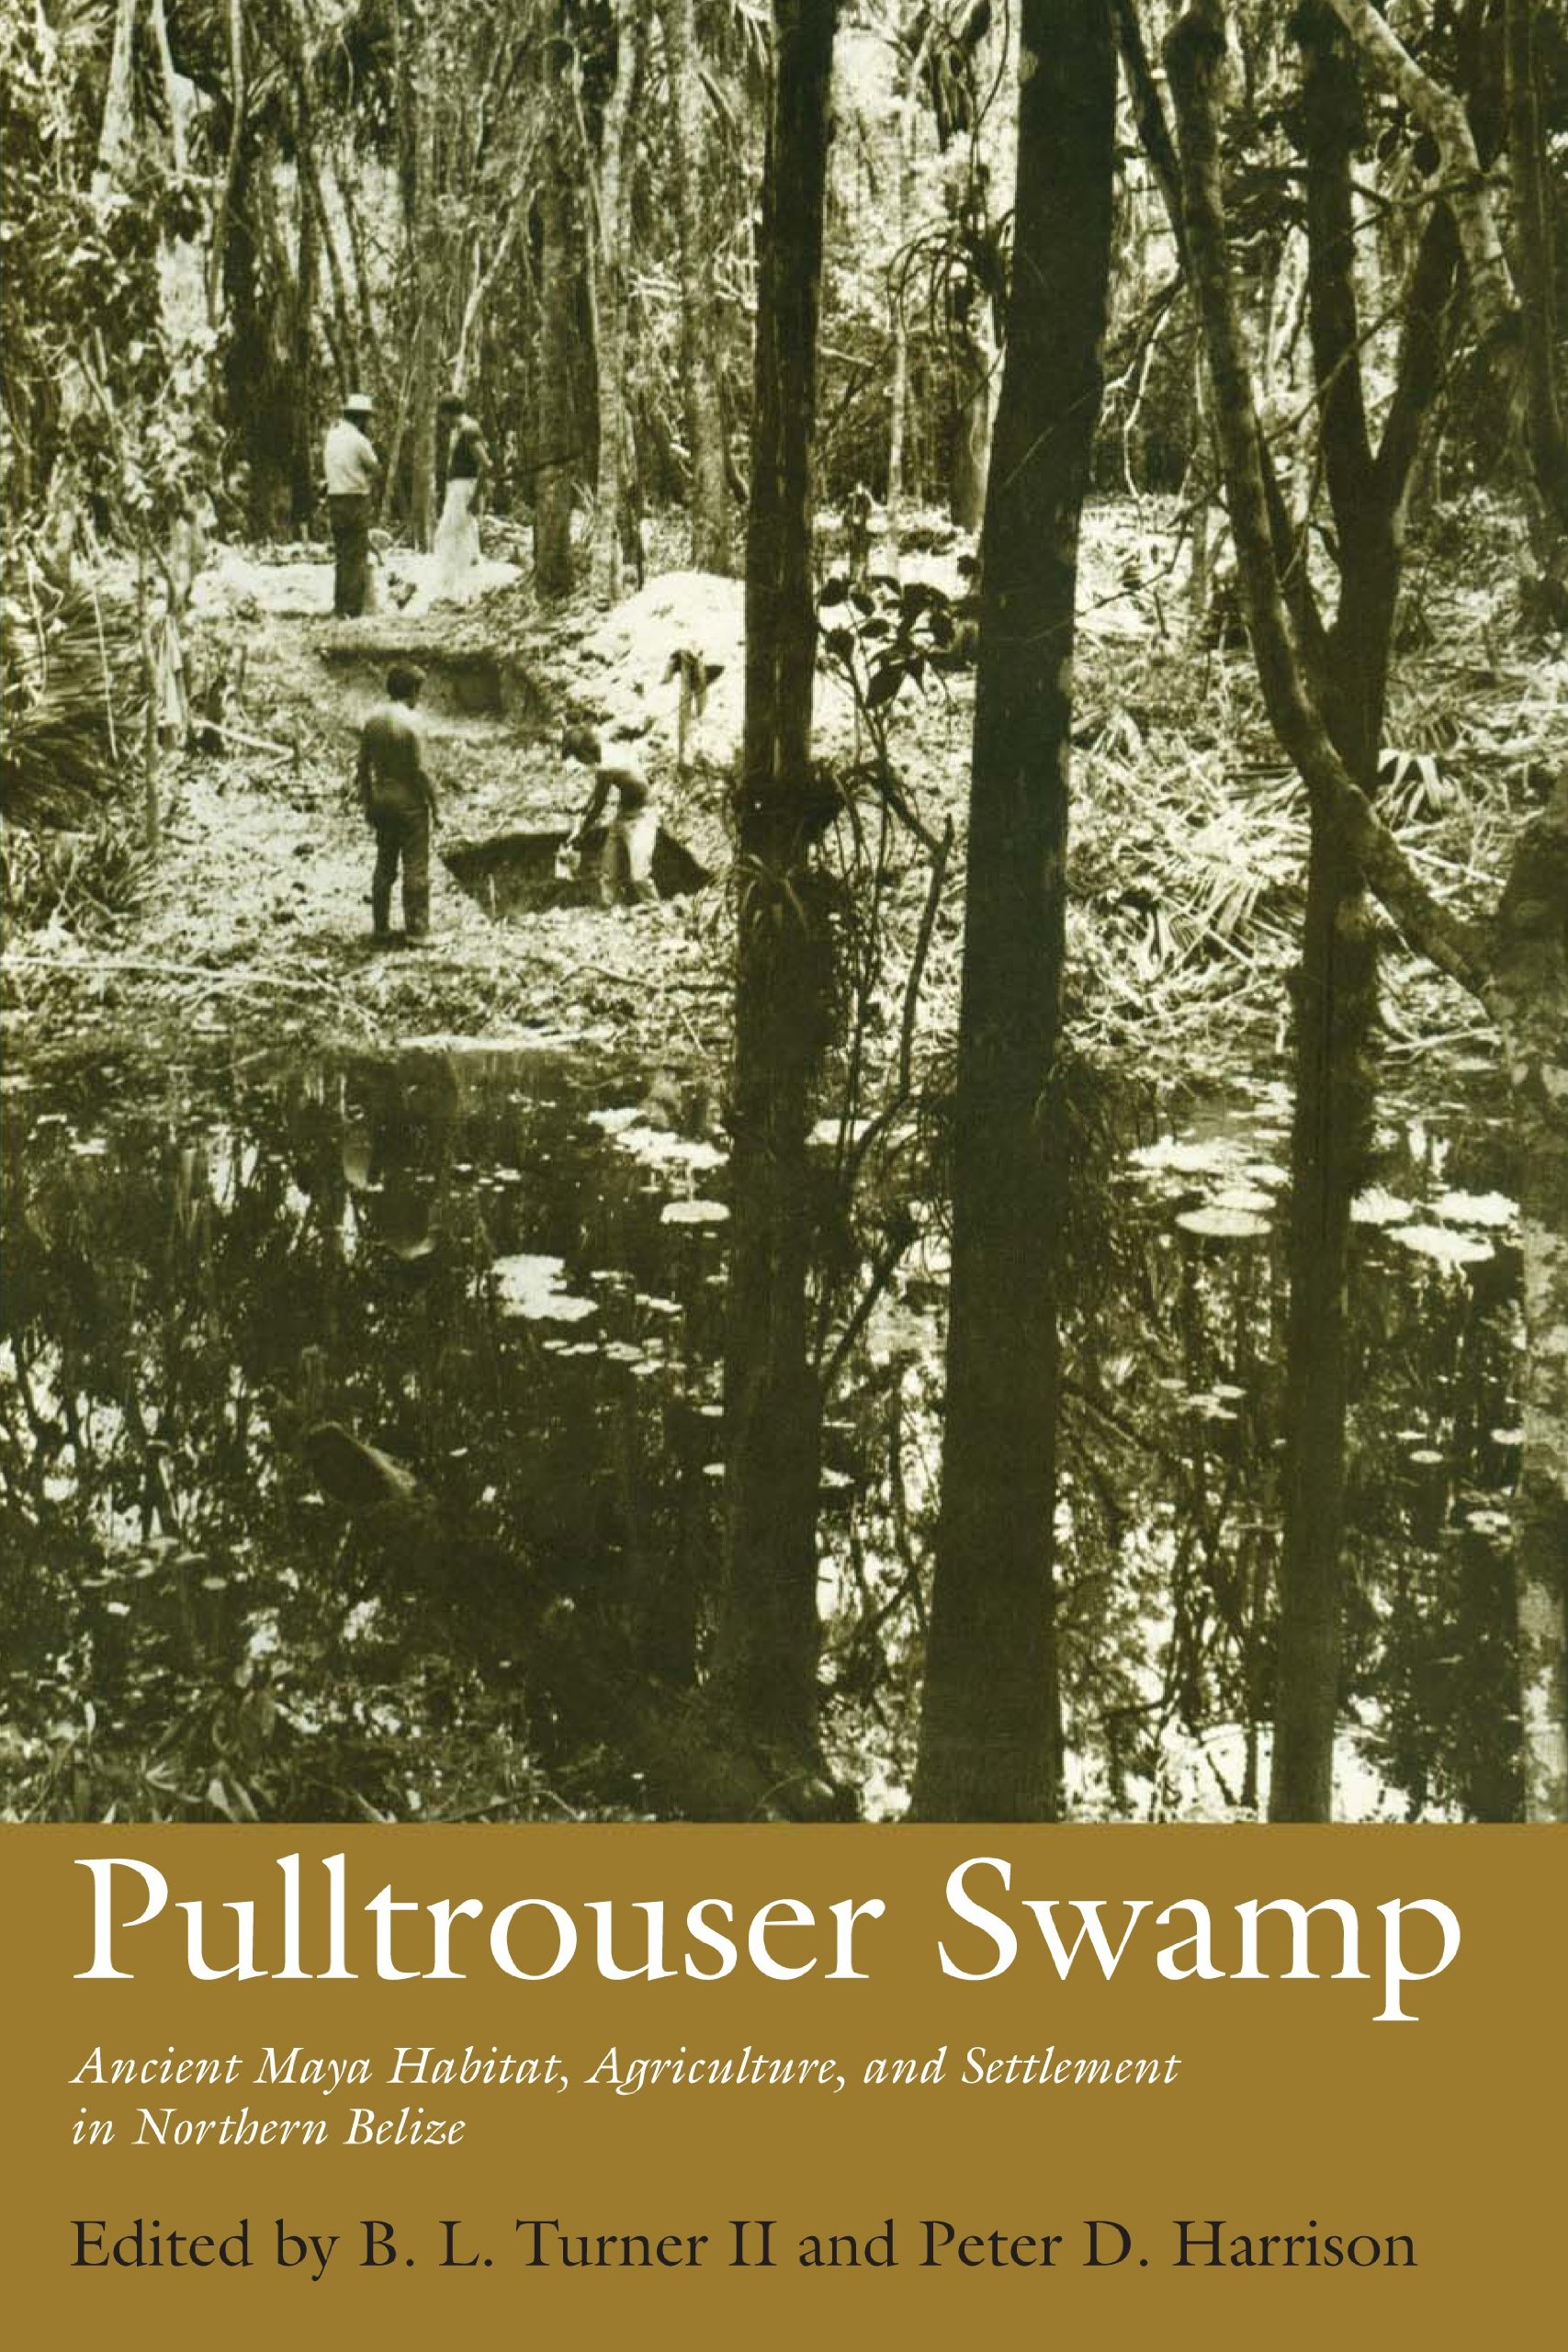 Pulltrouser Swamp: Ancient Maya Habitat, Agriculture, and Settlement in Northern Belize (Texas Pan American Series)